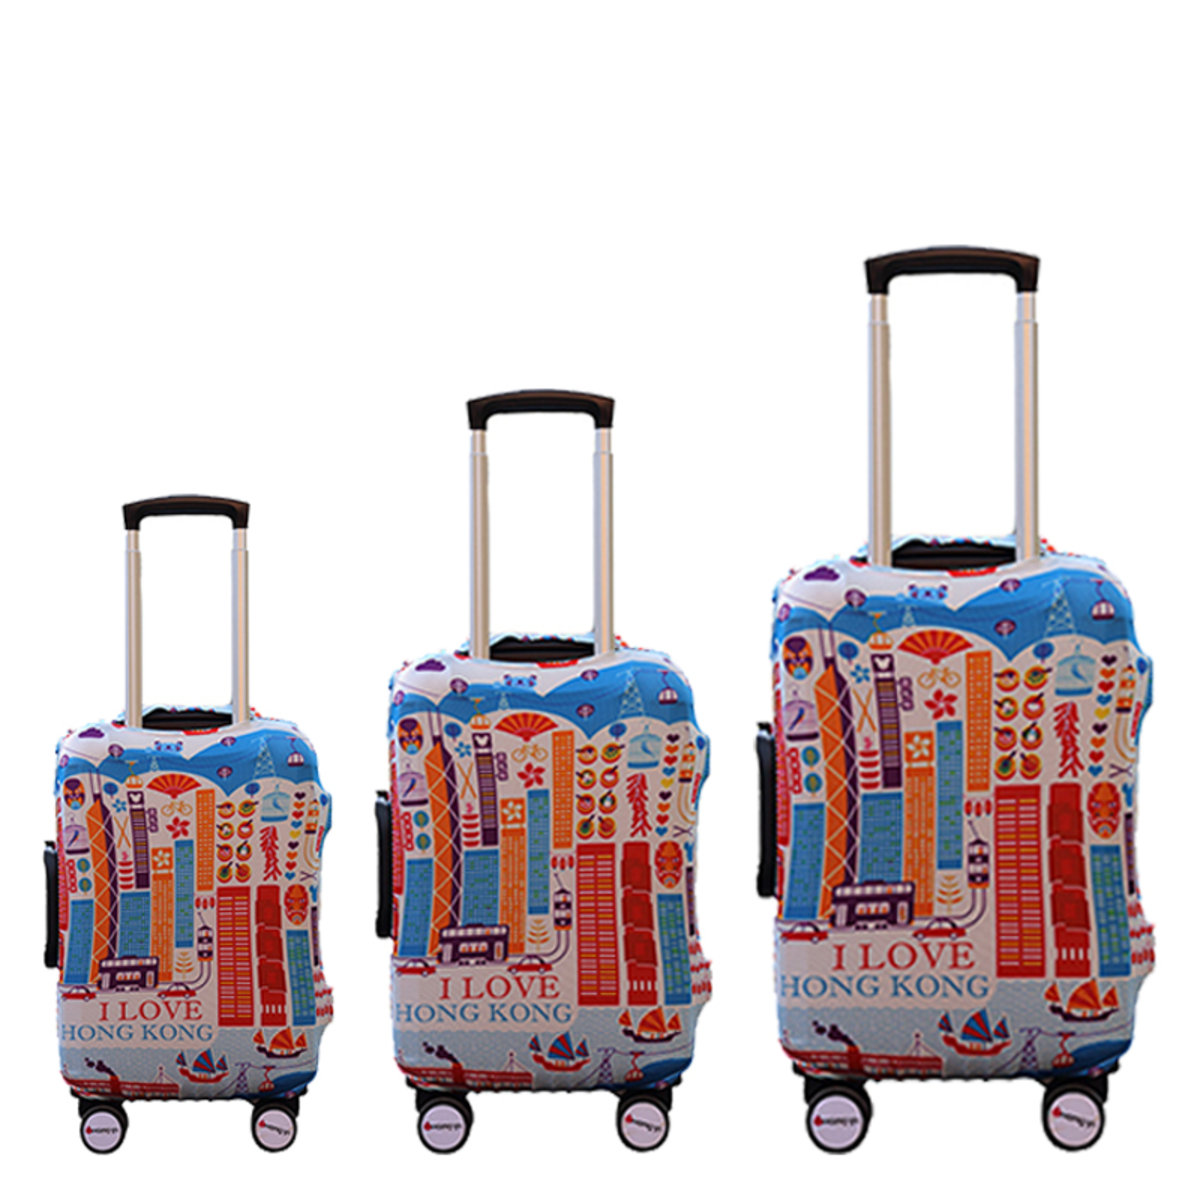 Where To Buy Luggage Bags In Hong Kong